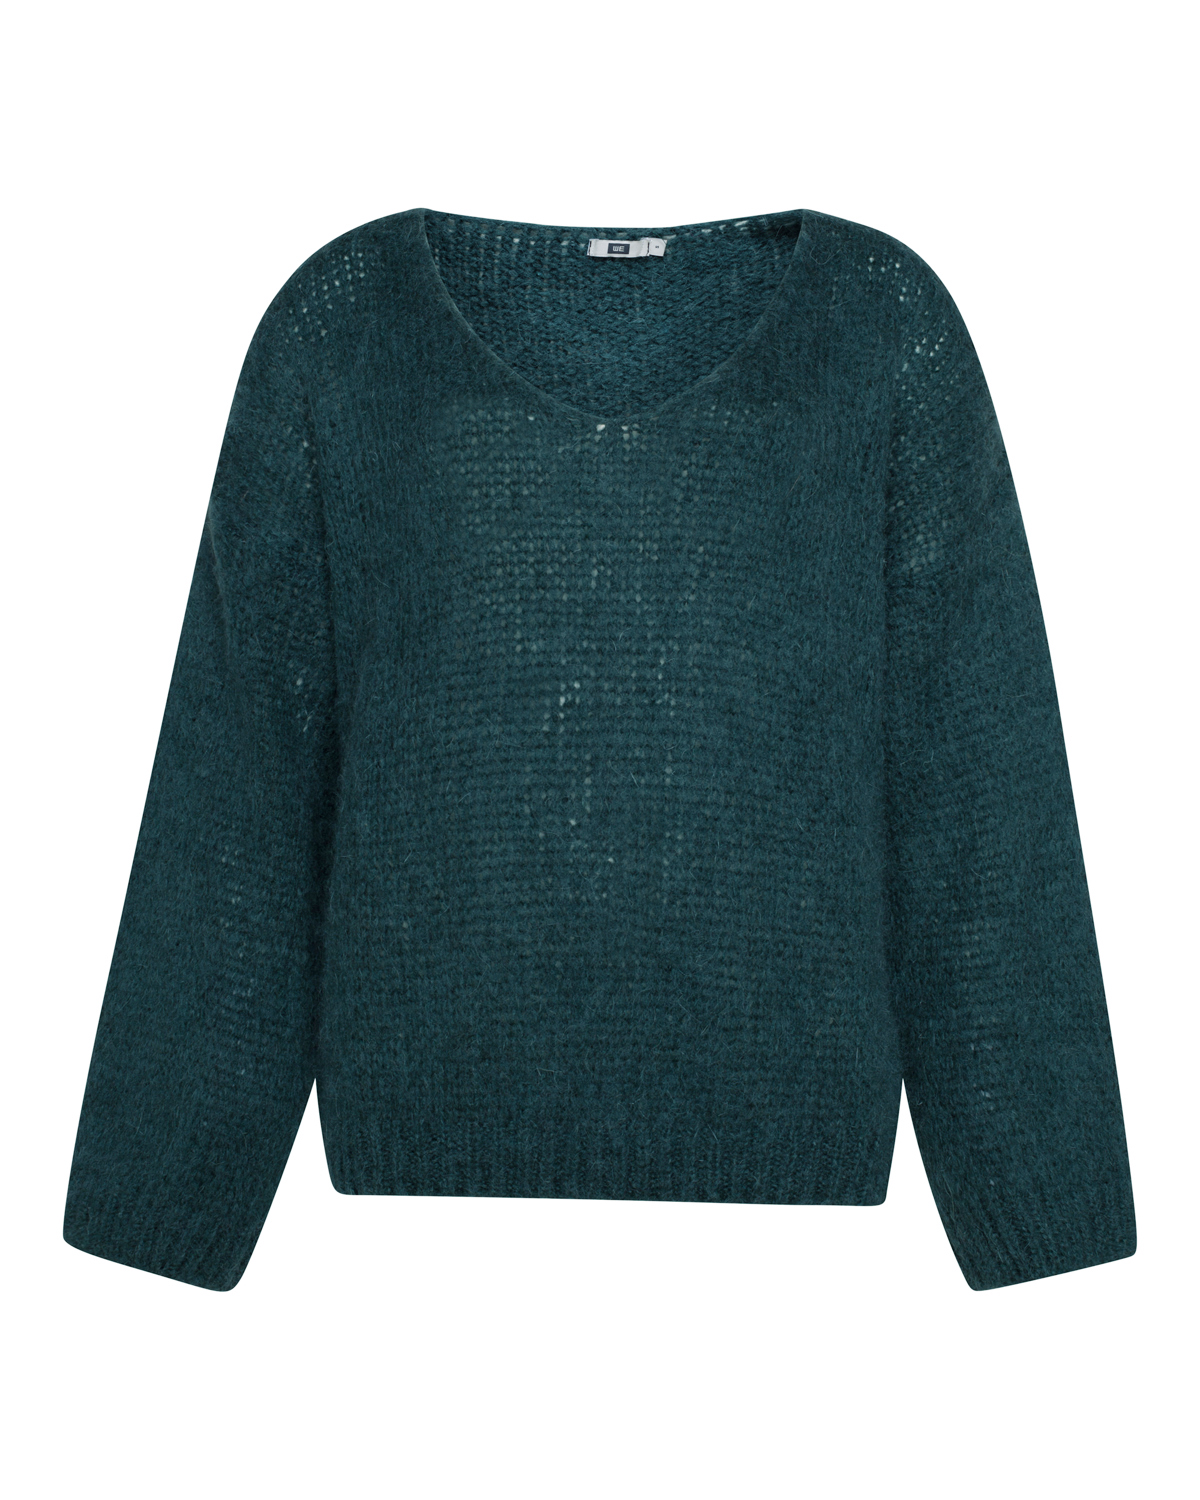 Truien Voor Dames.Dames Oversized Trui 87825695 We Fashion